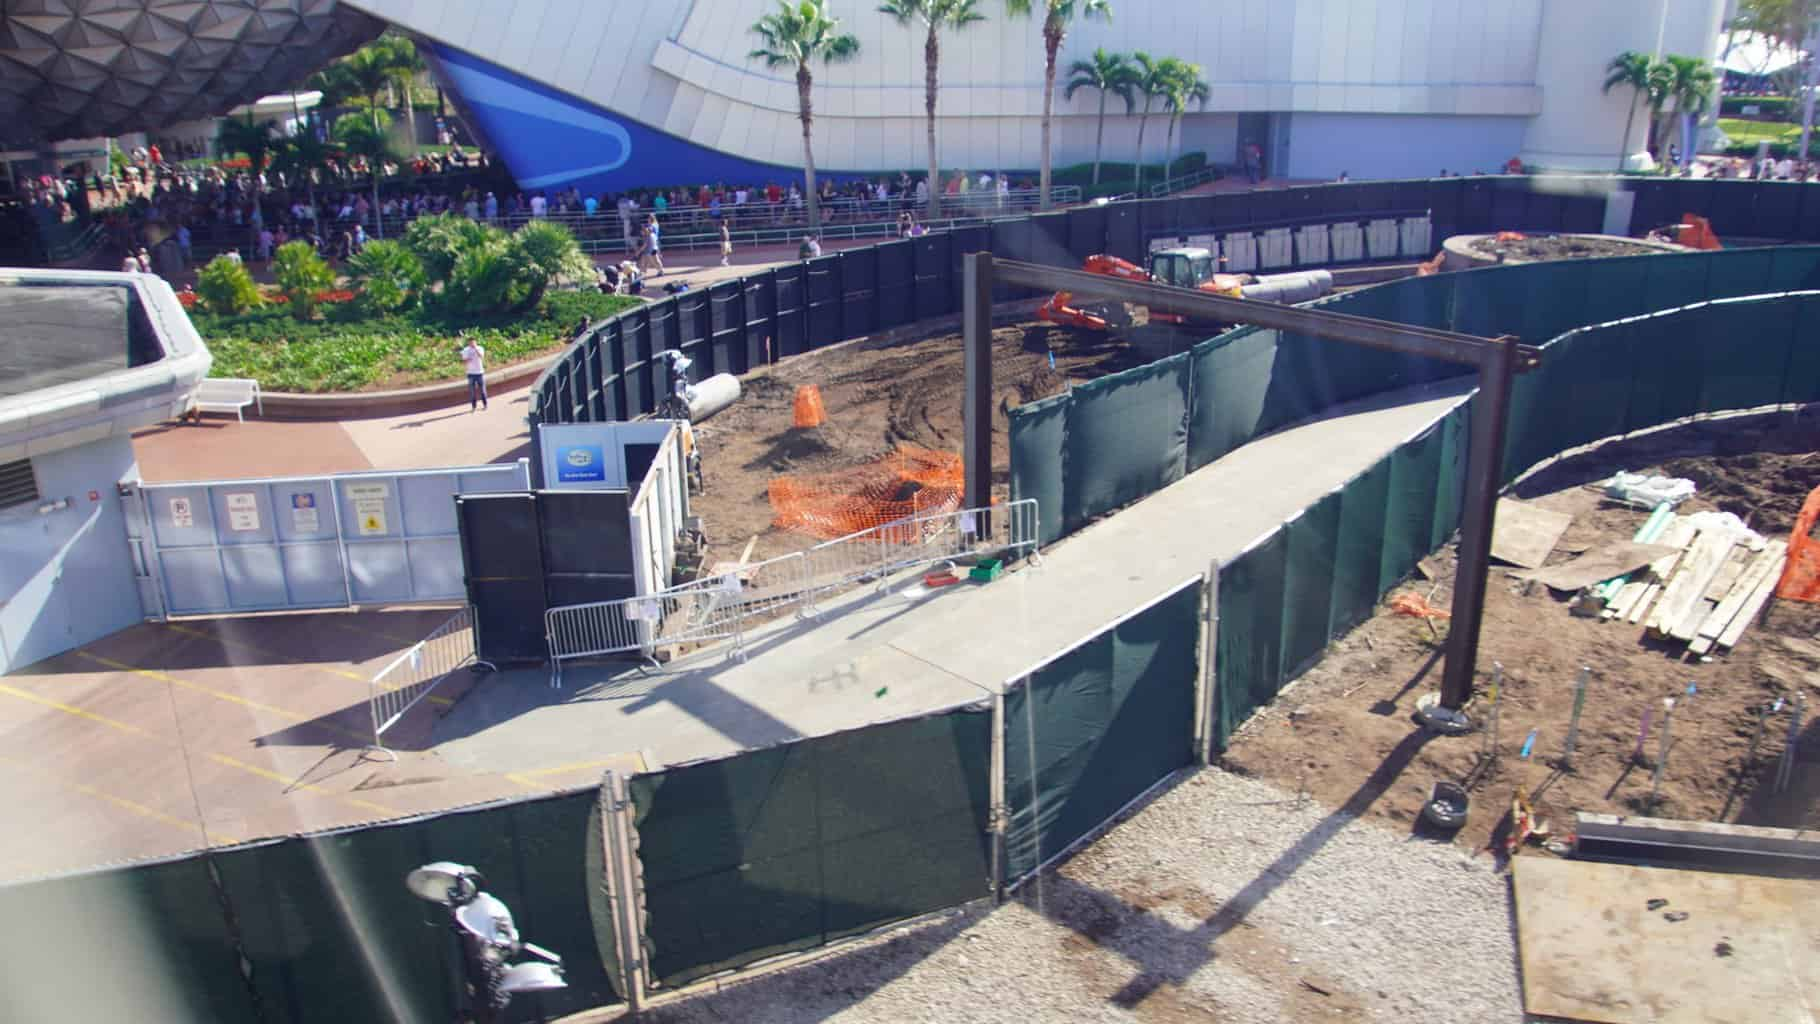 New path Innoventions West Demolition Epcot Construction Updates November 2019